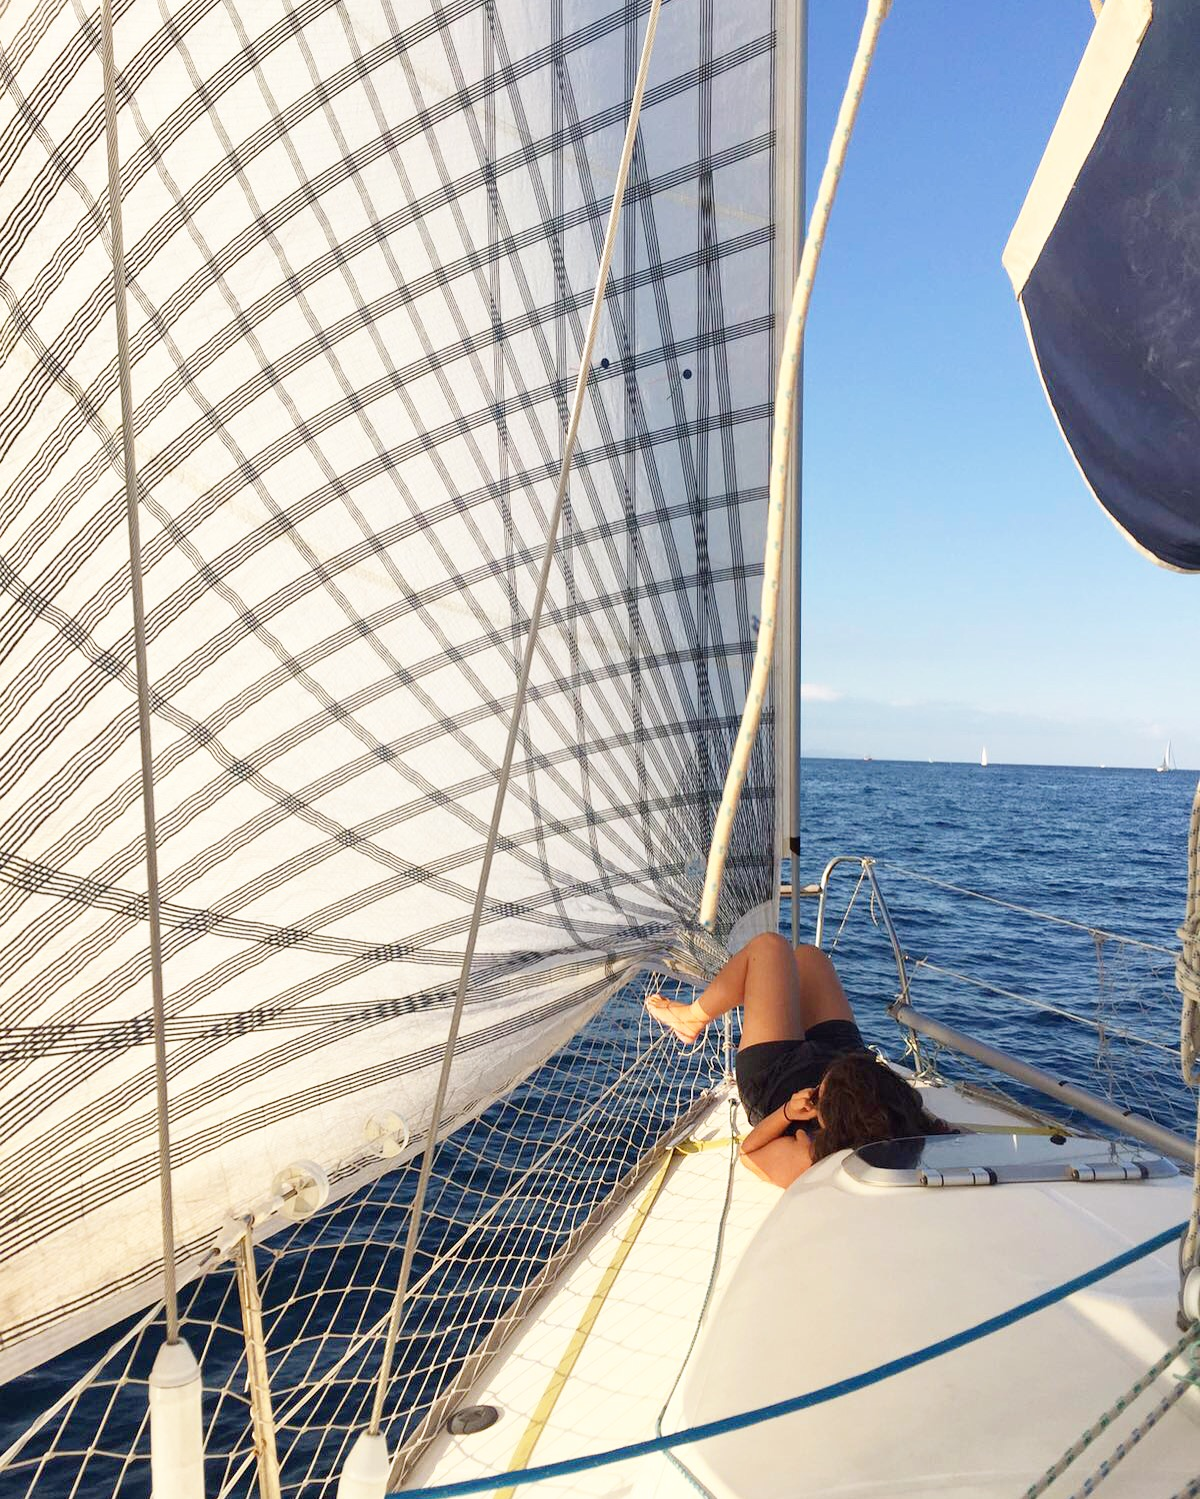 Hallie sailing off the coast of Barcelona - 3 Days*